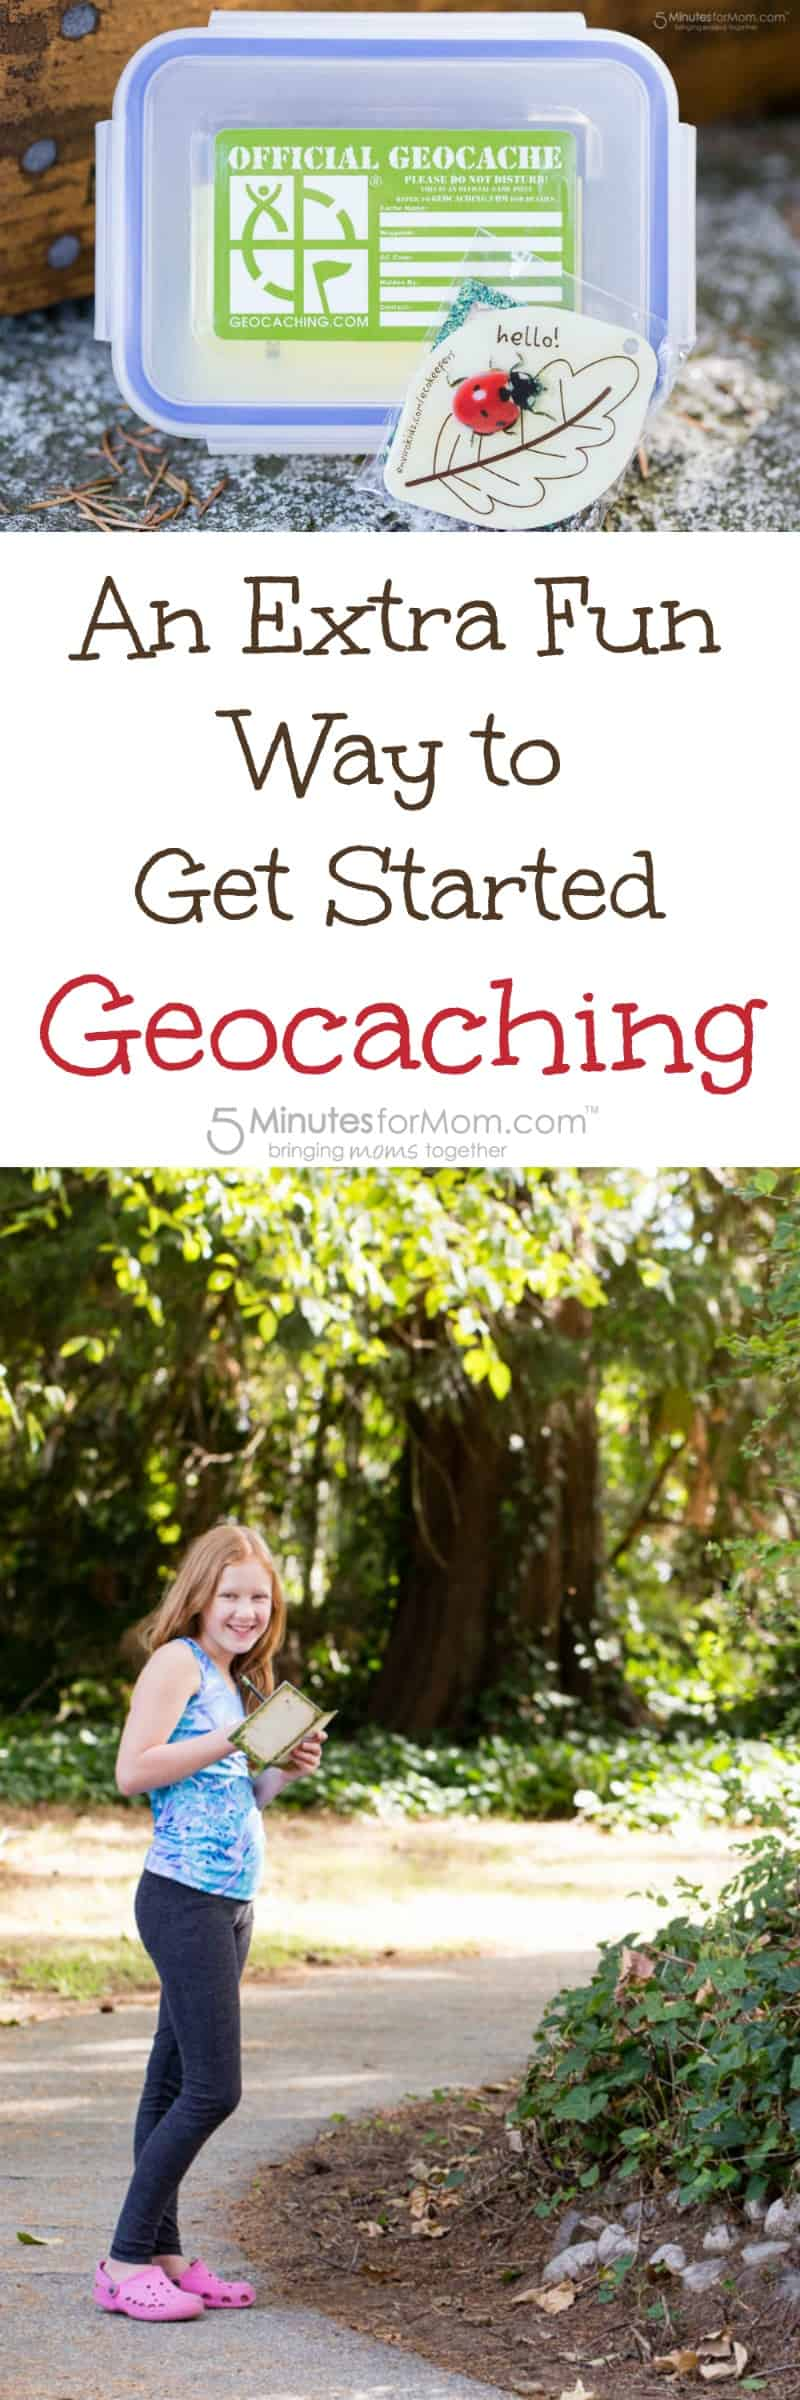 An extra fun way to get started geocaching